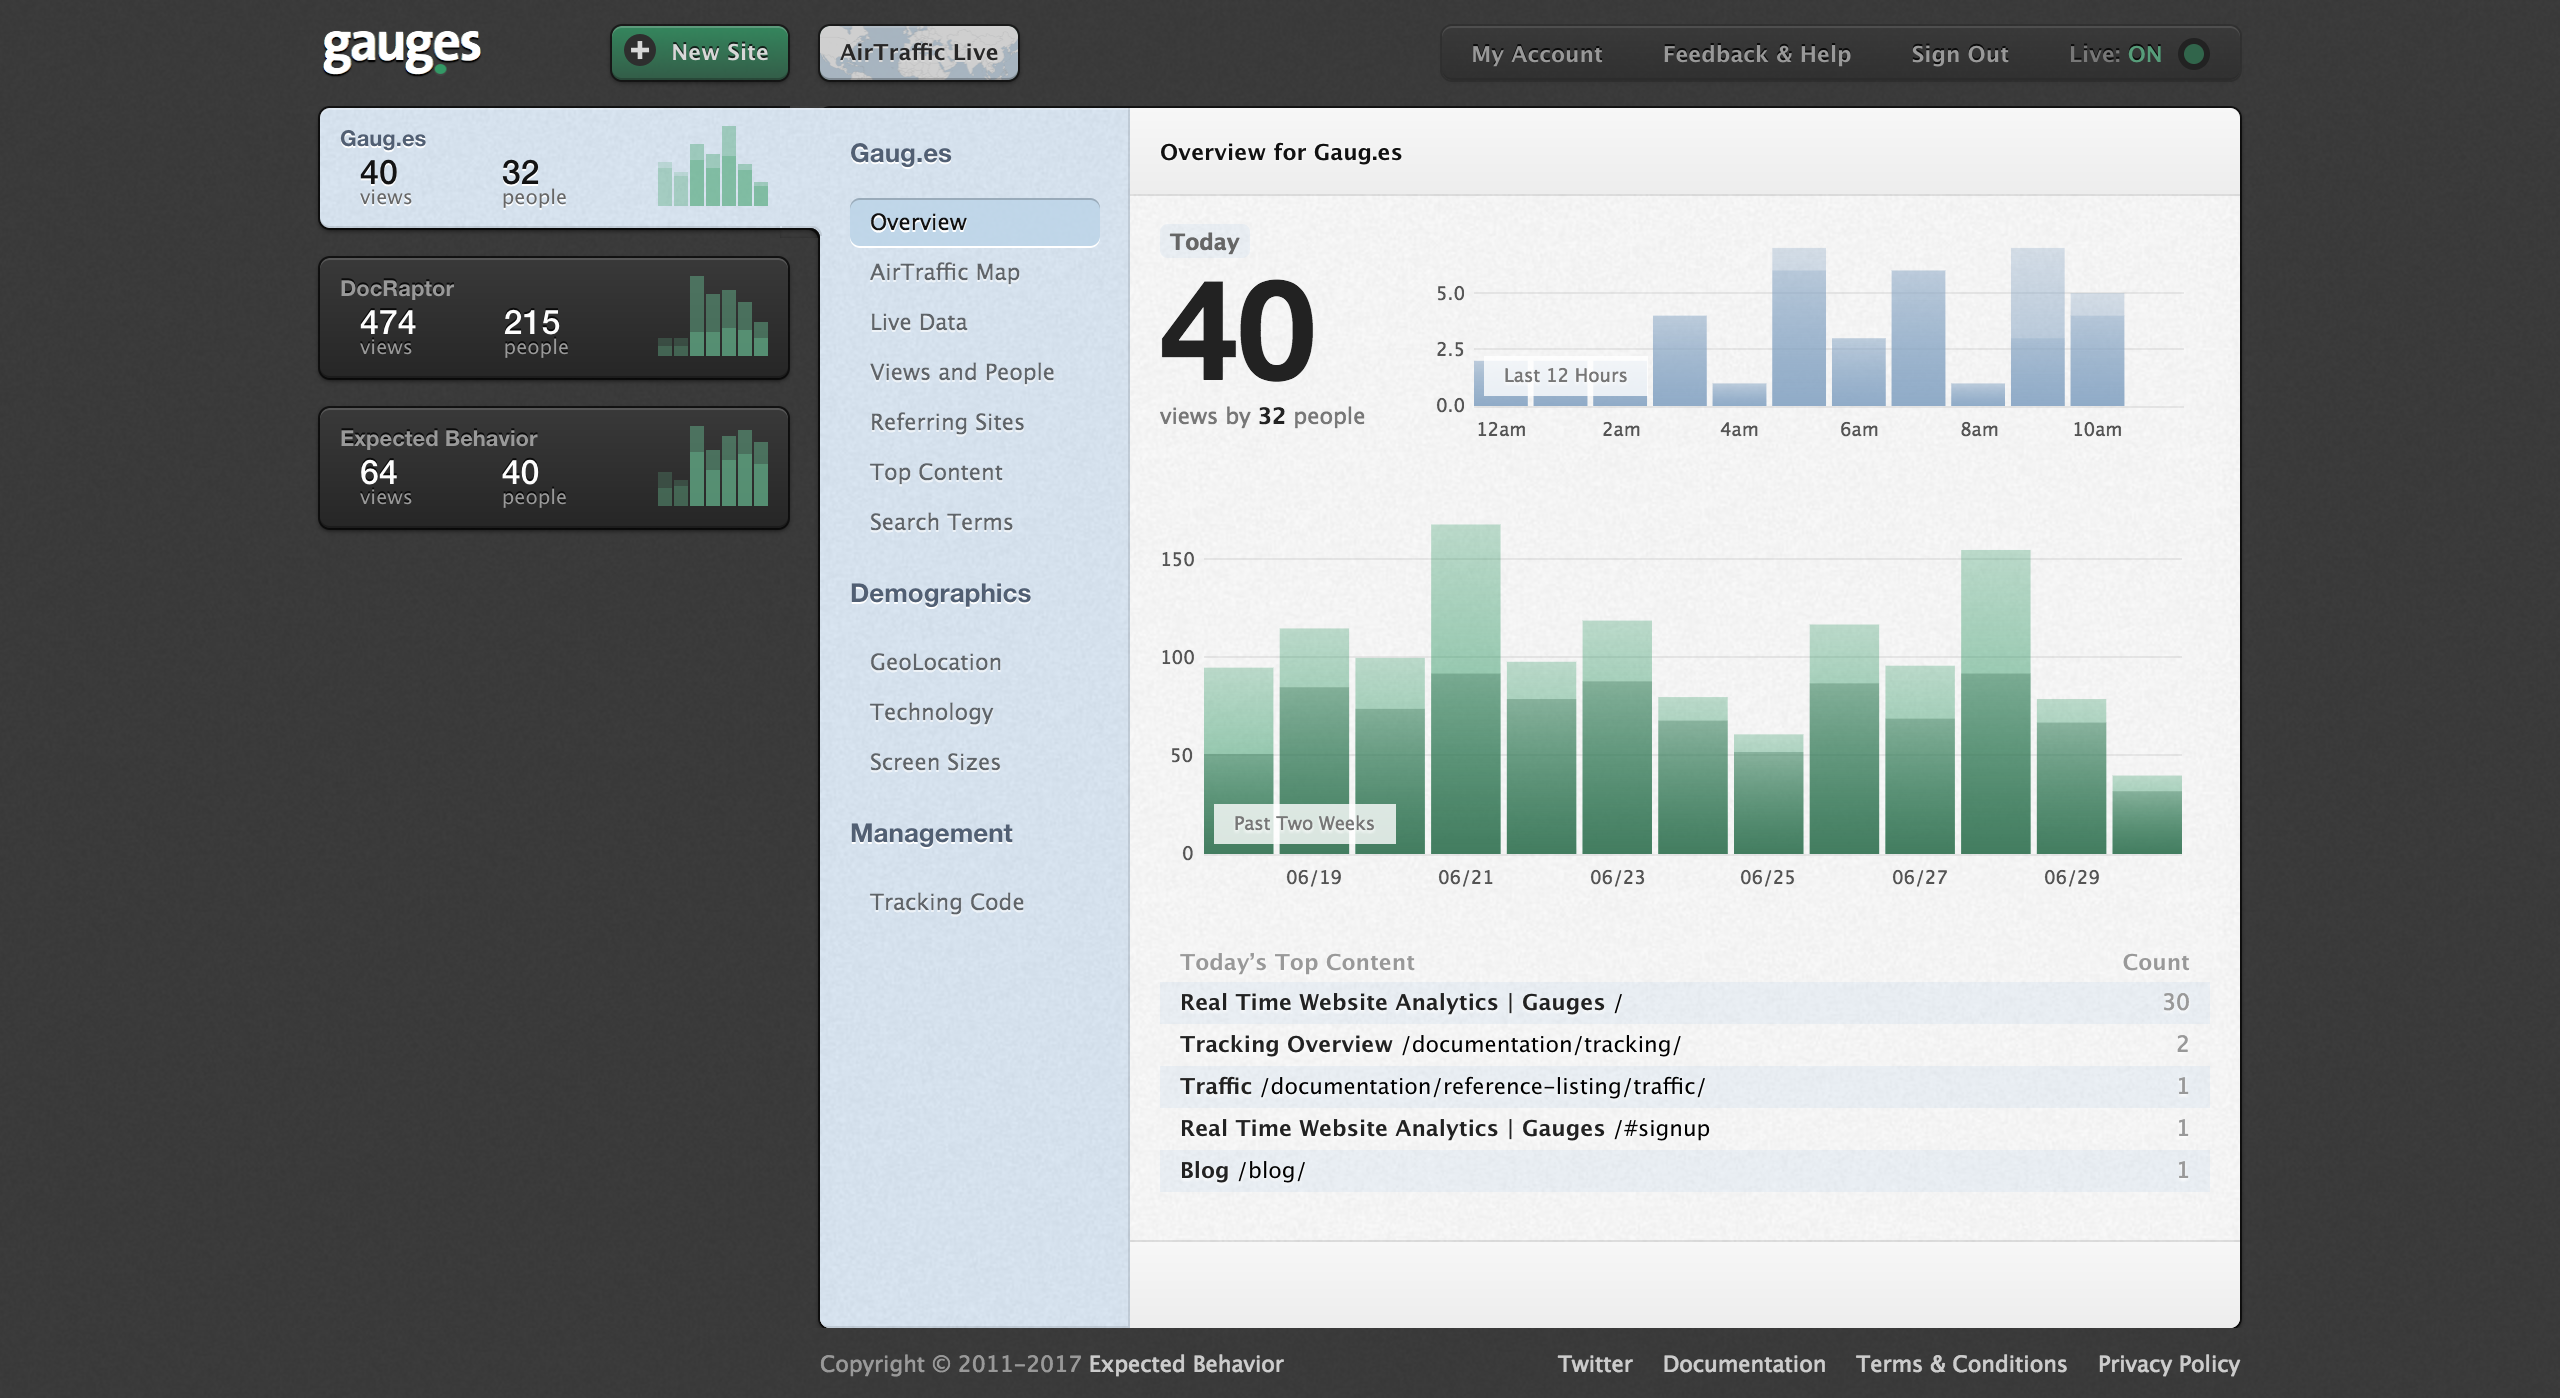 All reports update in real time as people visit and interact with your website.